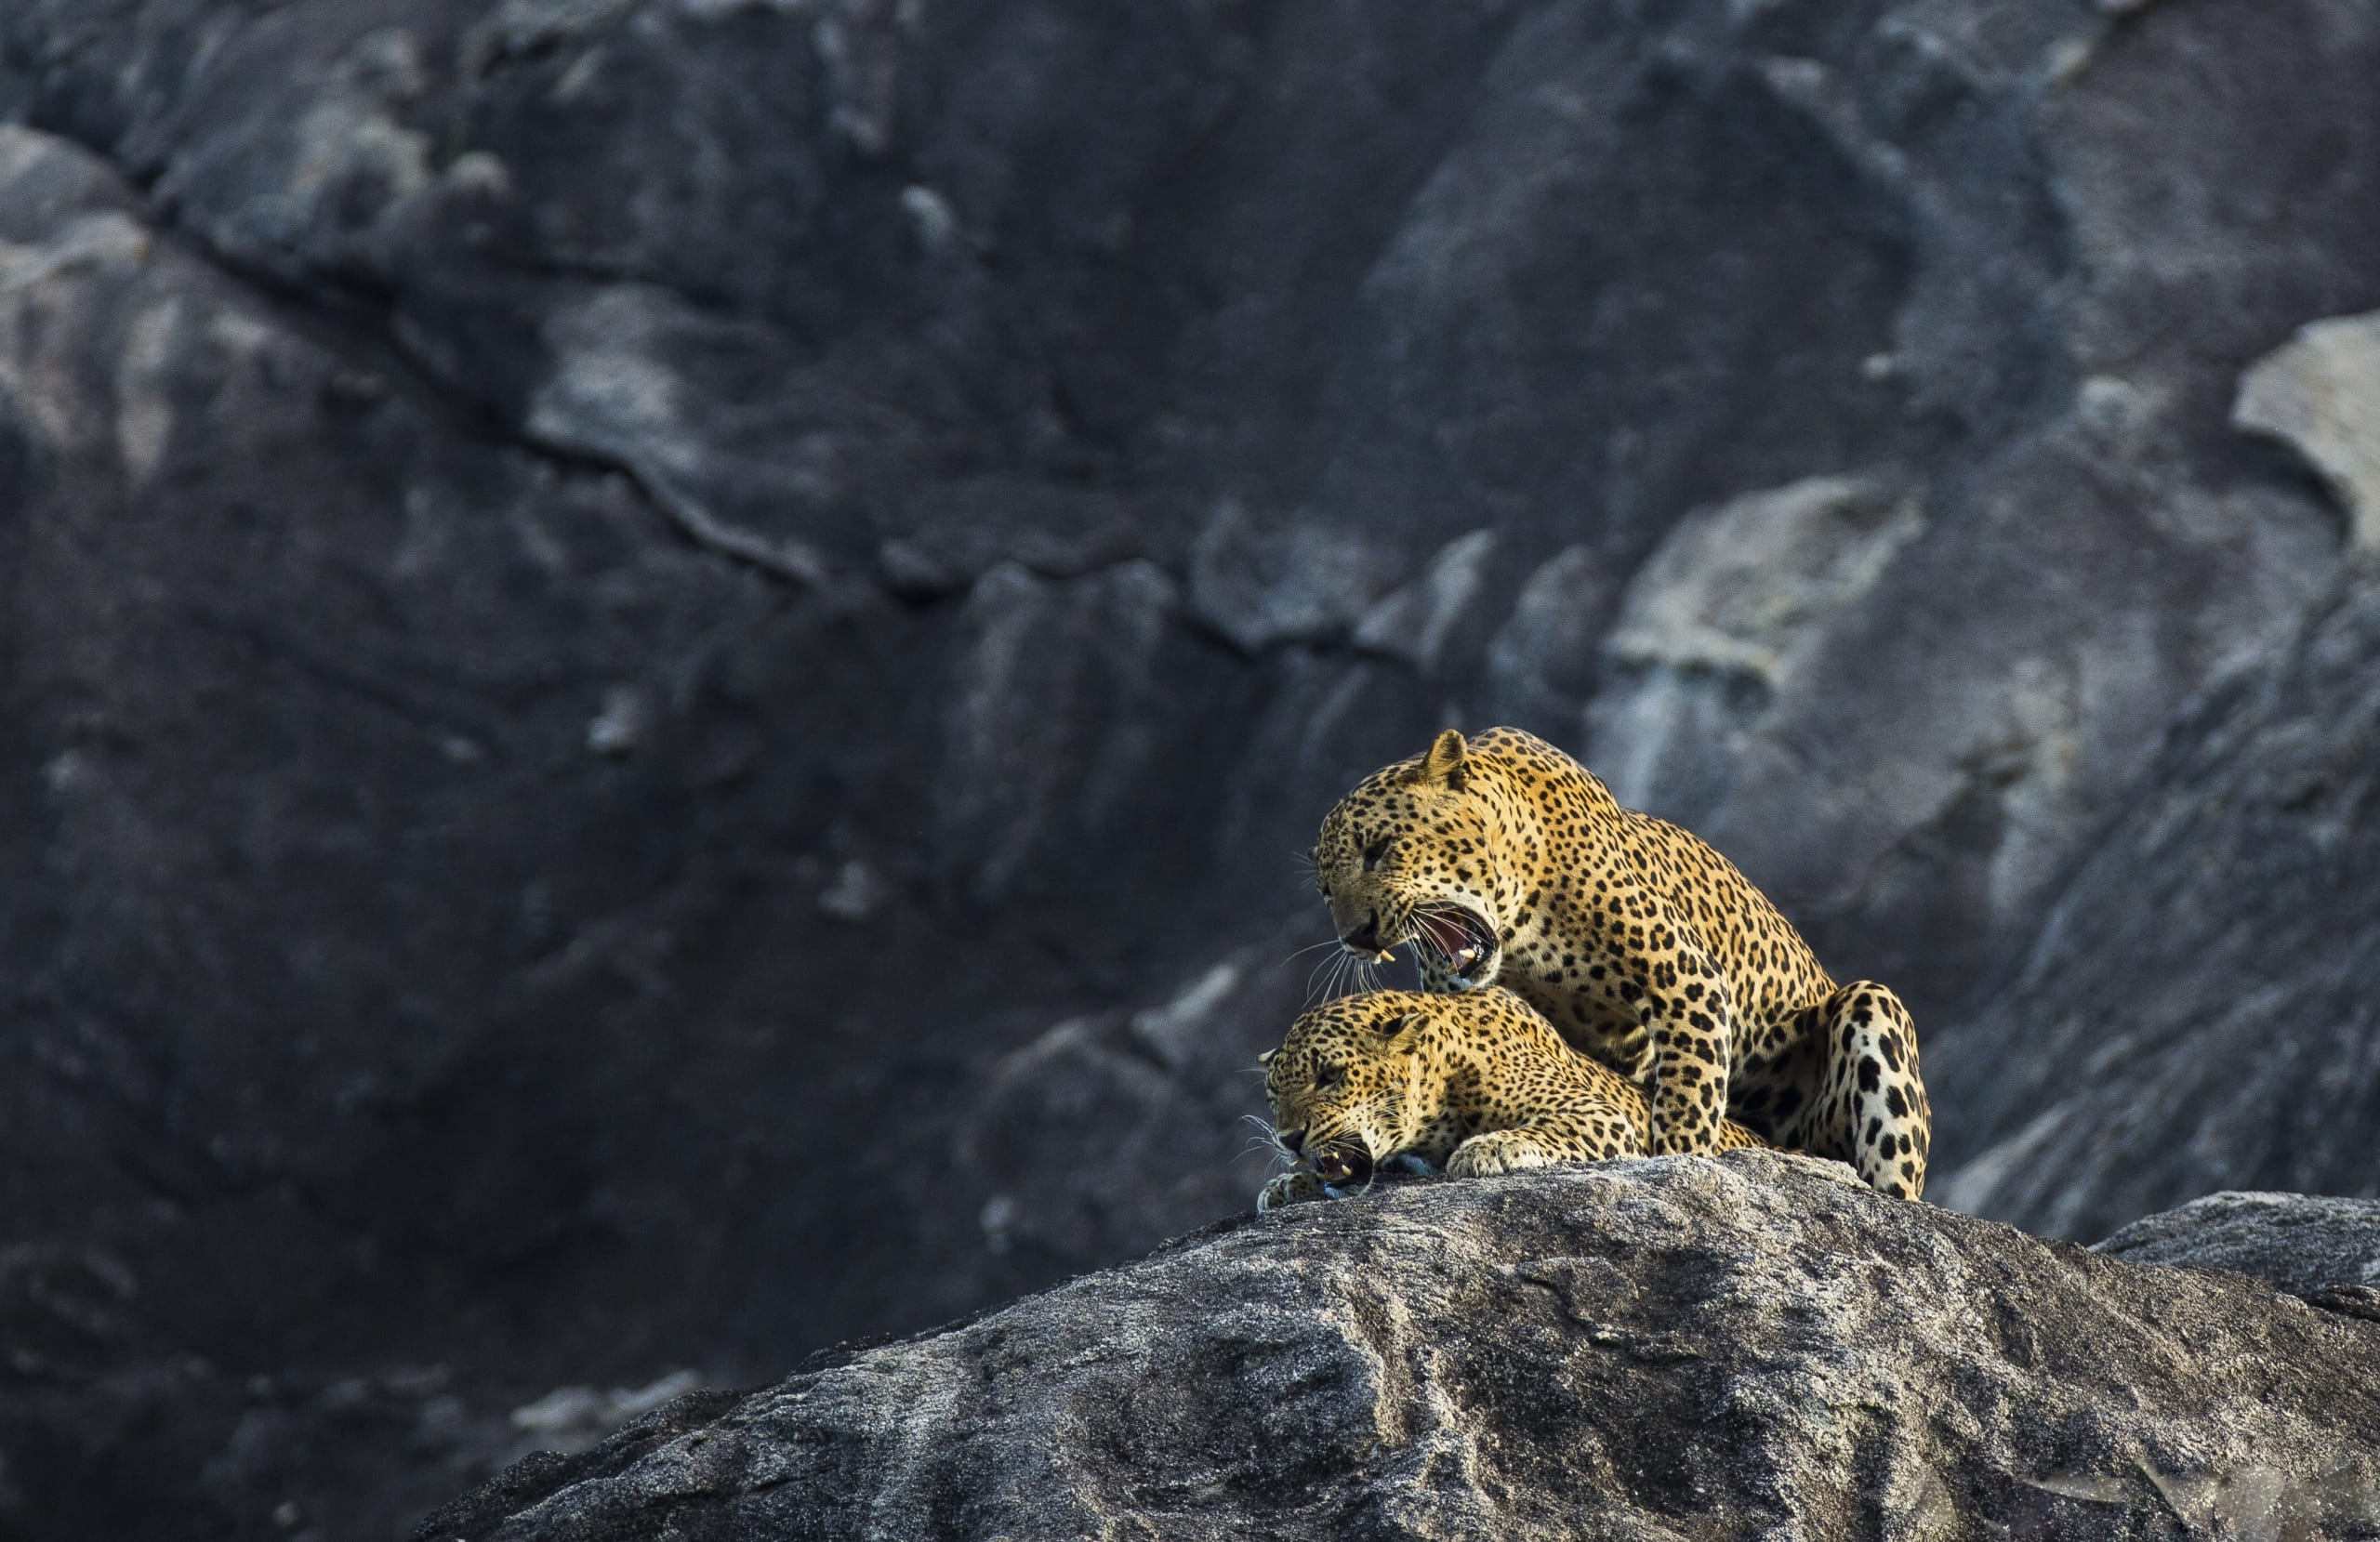 A pair of Mating Leopards on rocks in Yala one of the many locations found on the NaturesLens Wildlife of Sri Lanka Photography Holiday